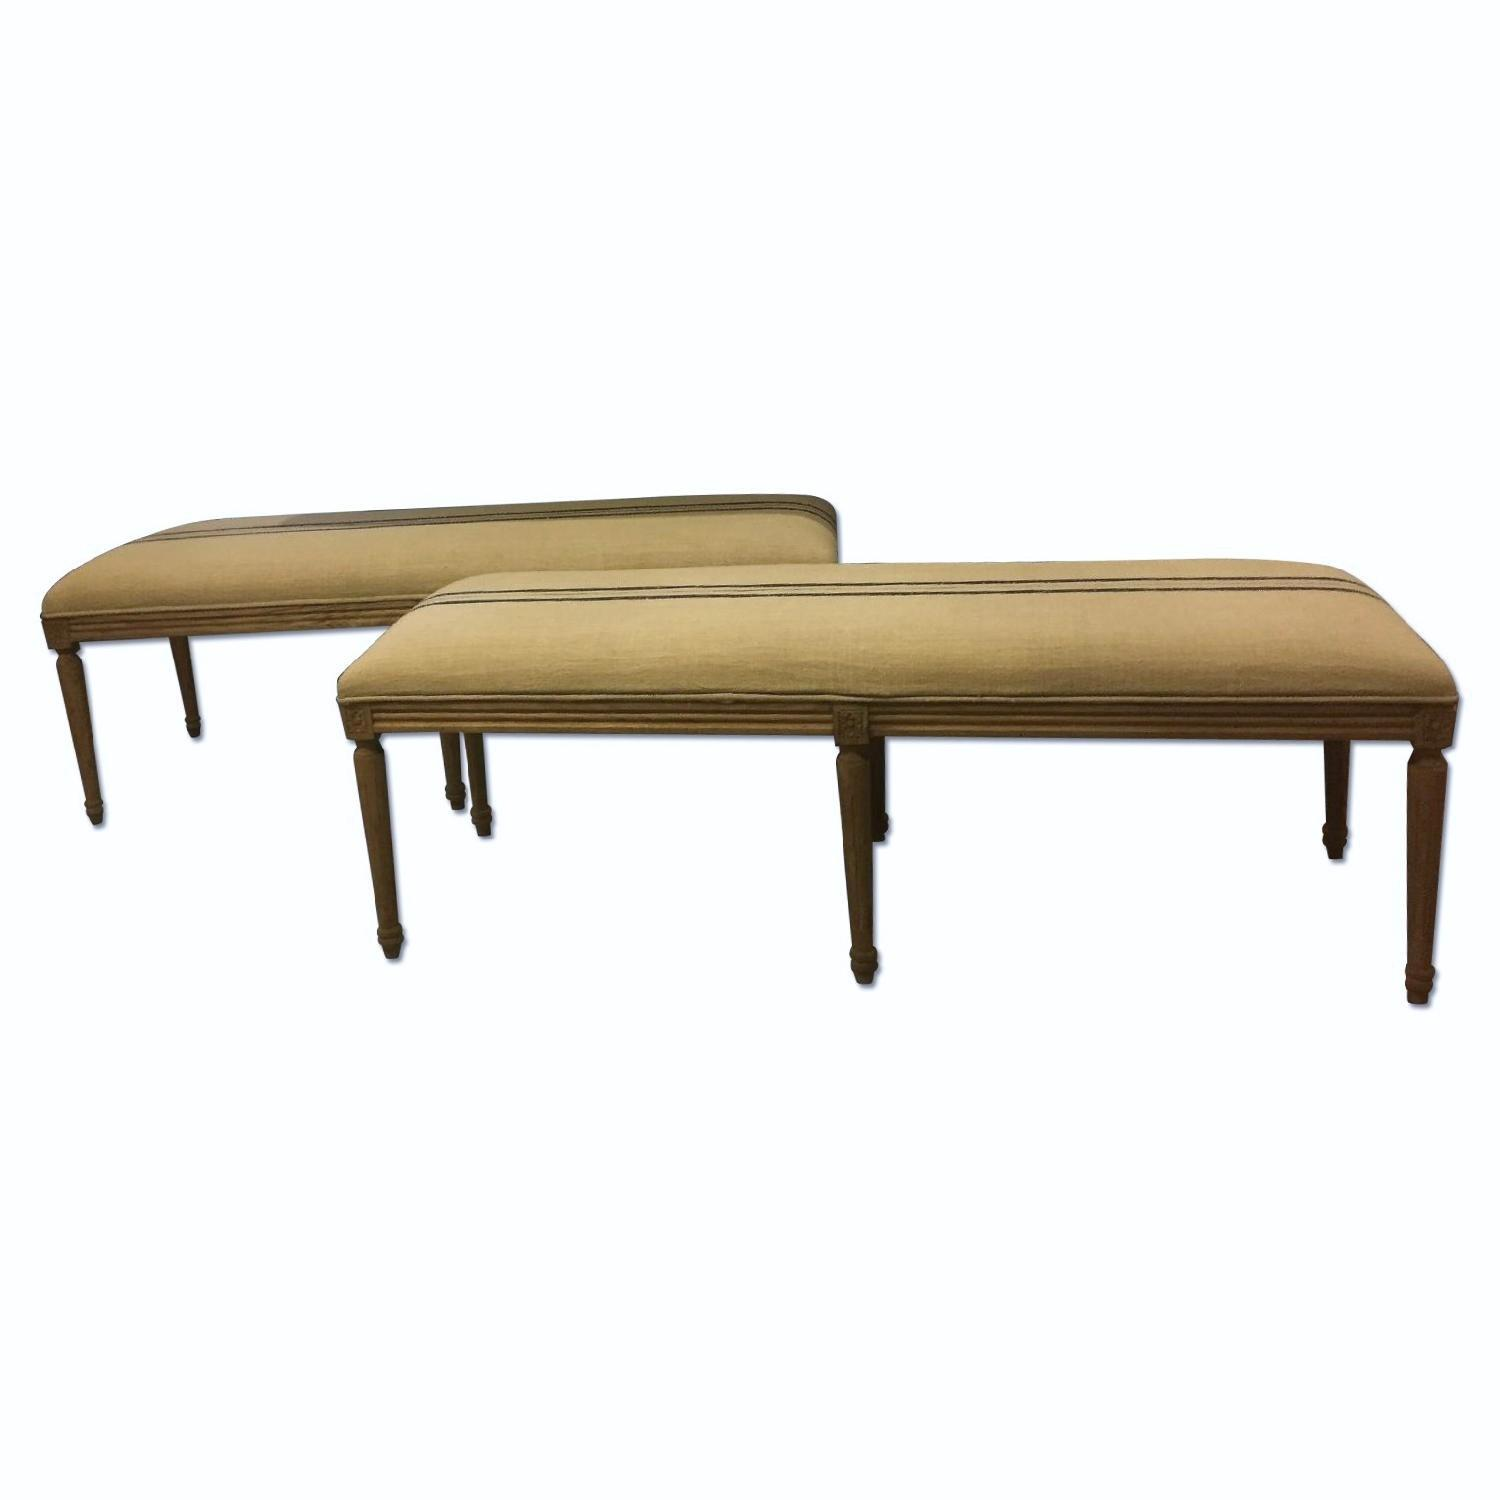 Louis XVI Style Dining Benches - image-9